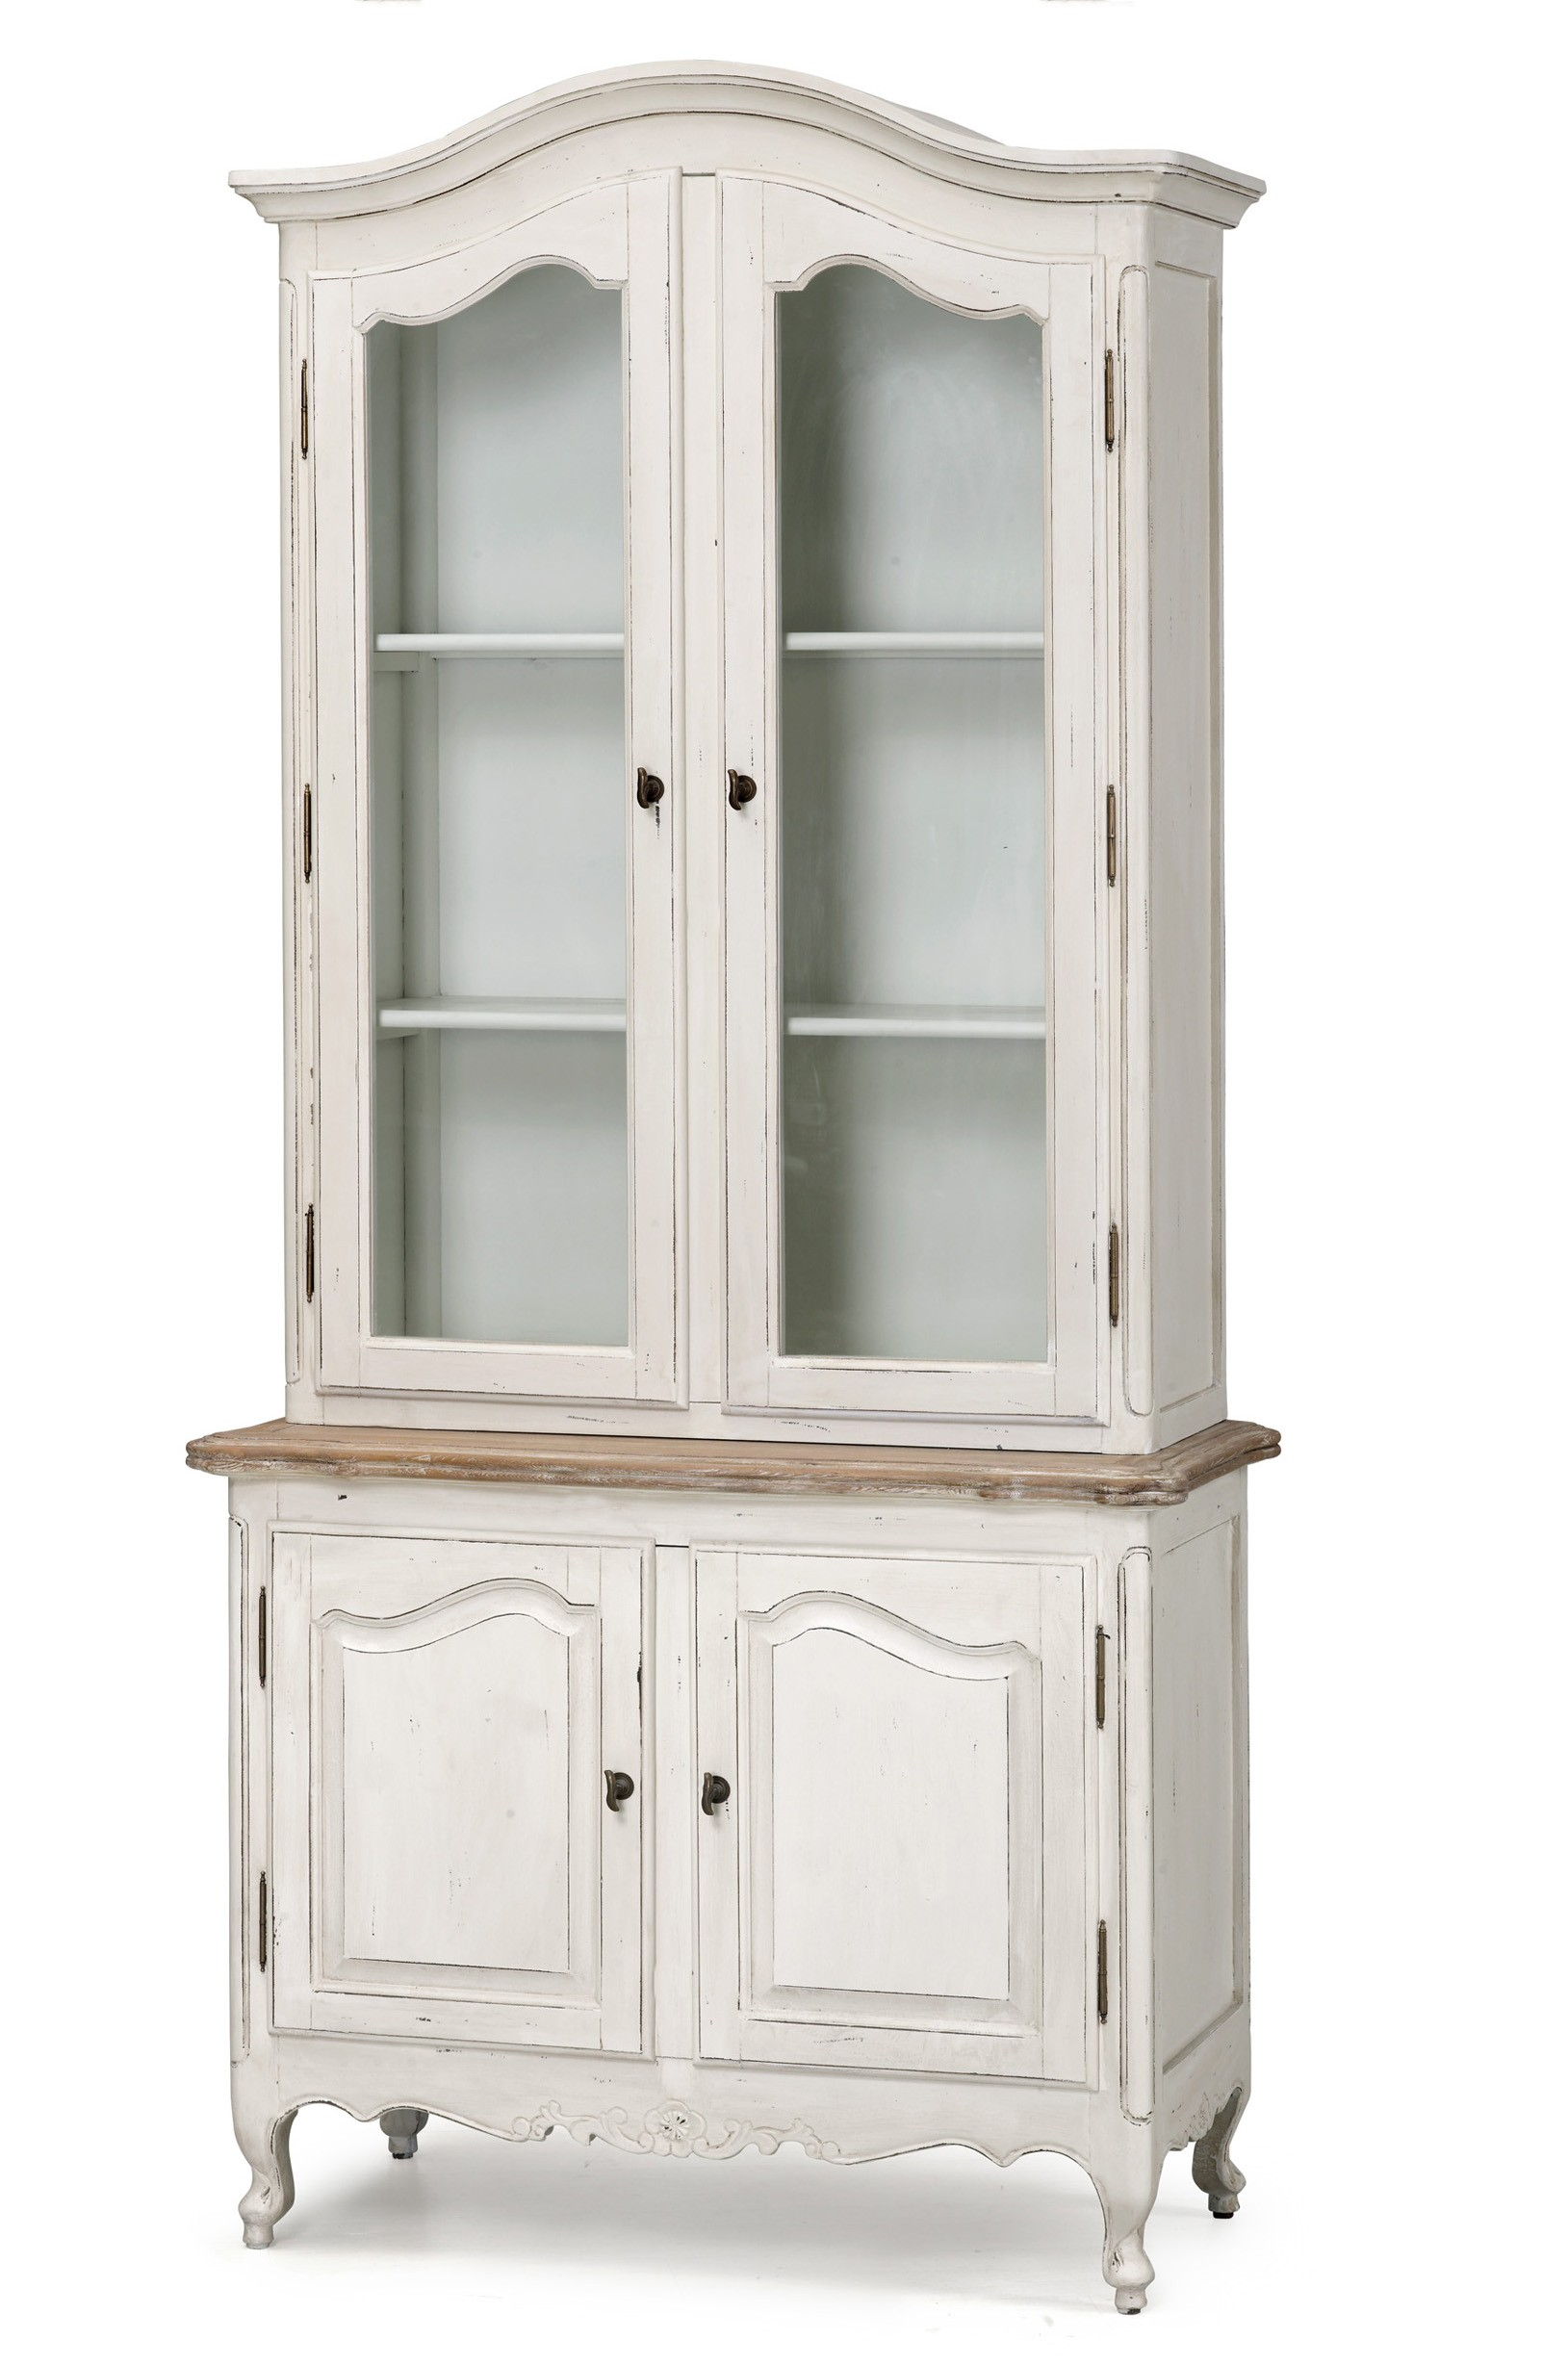 French Provincial Vintage Furniture Classic Display